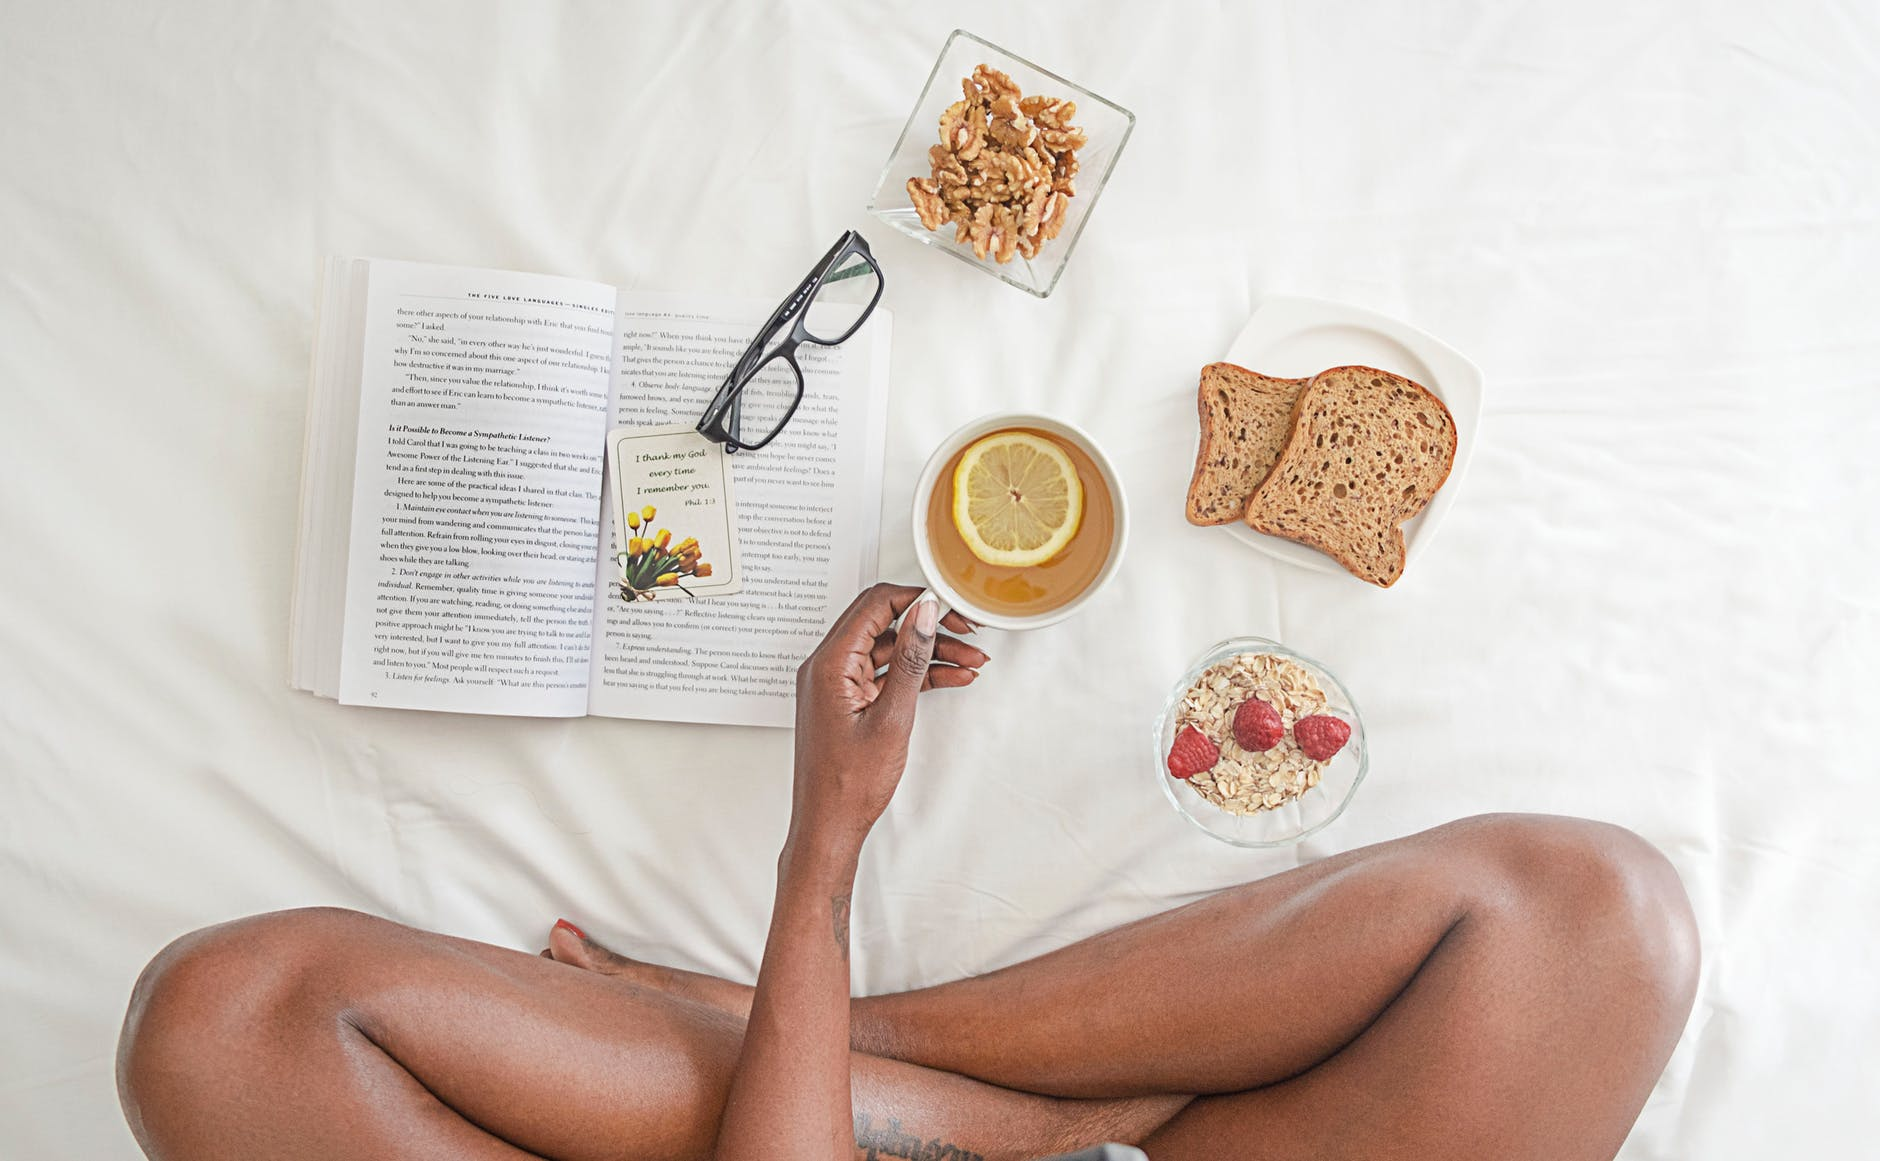 person holding white ceramic mug with lemon near book and sliced bread on white comforter